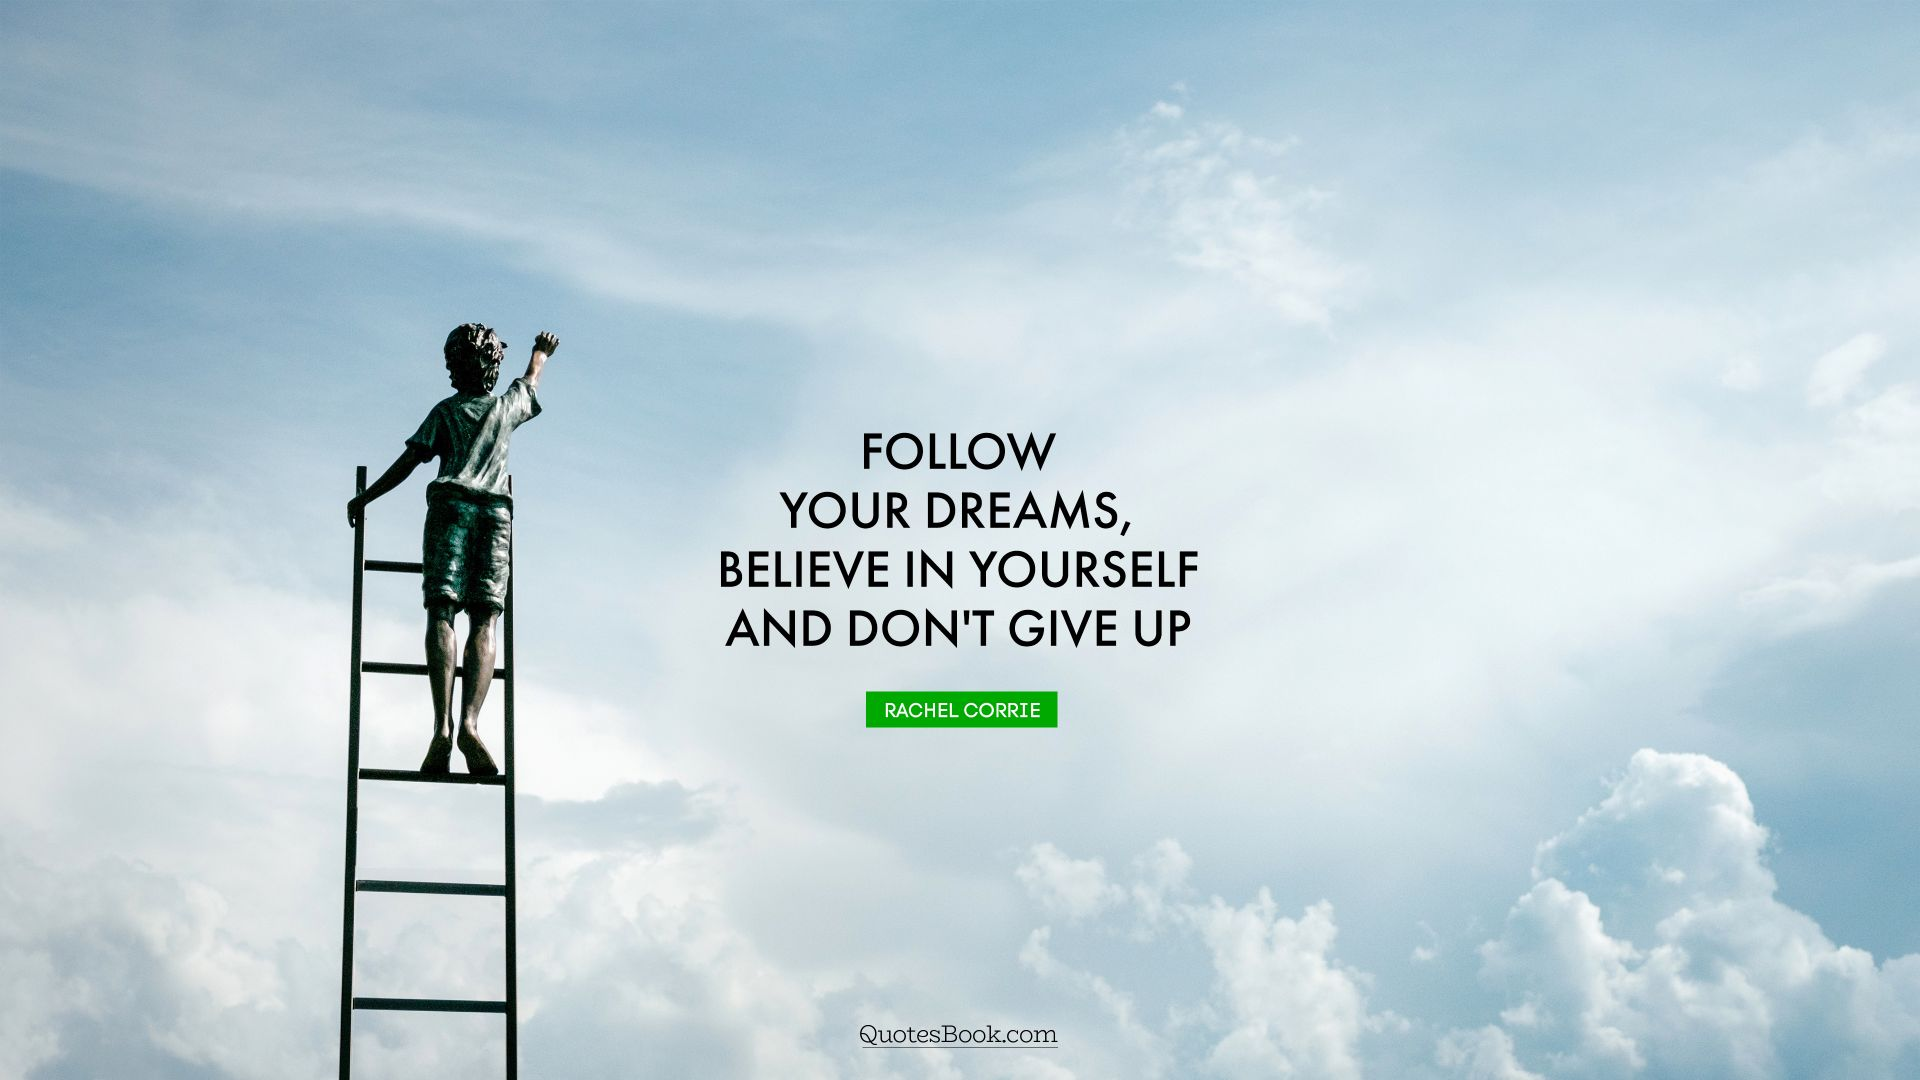 Follow your dreams, believe in yourself and don't give up. - Quote by Rachel Corrie